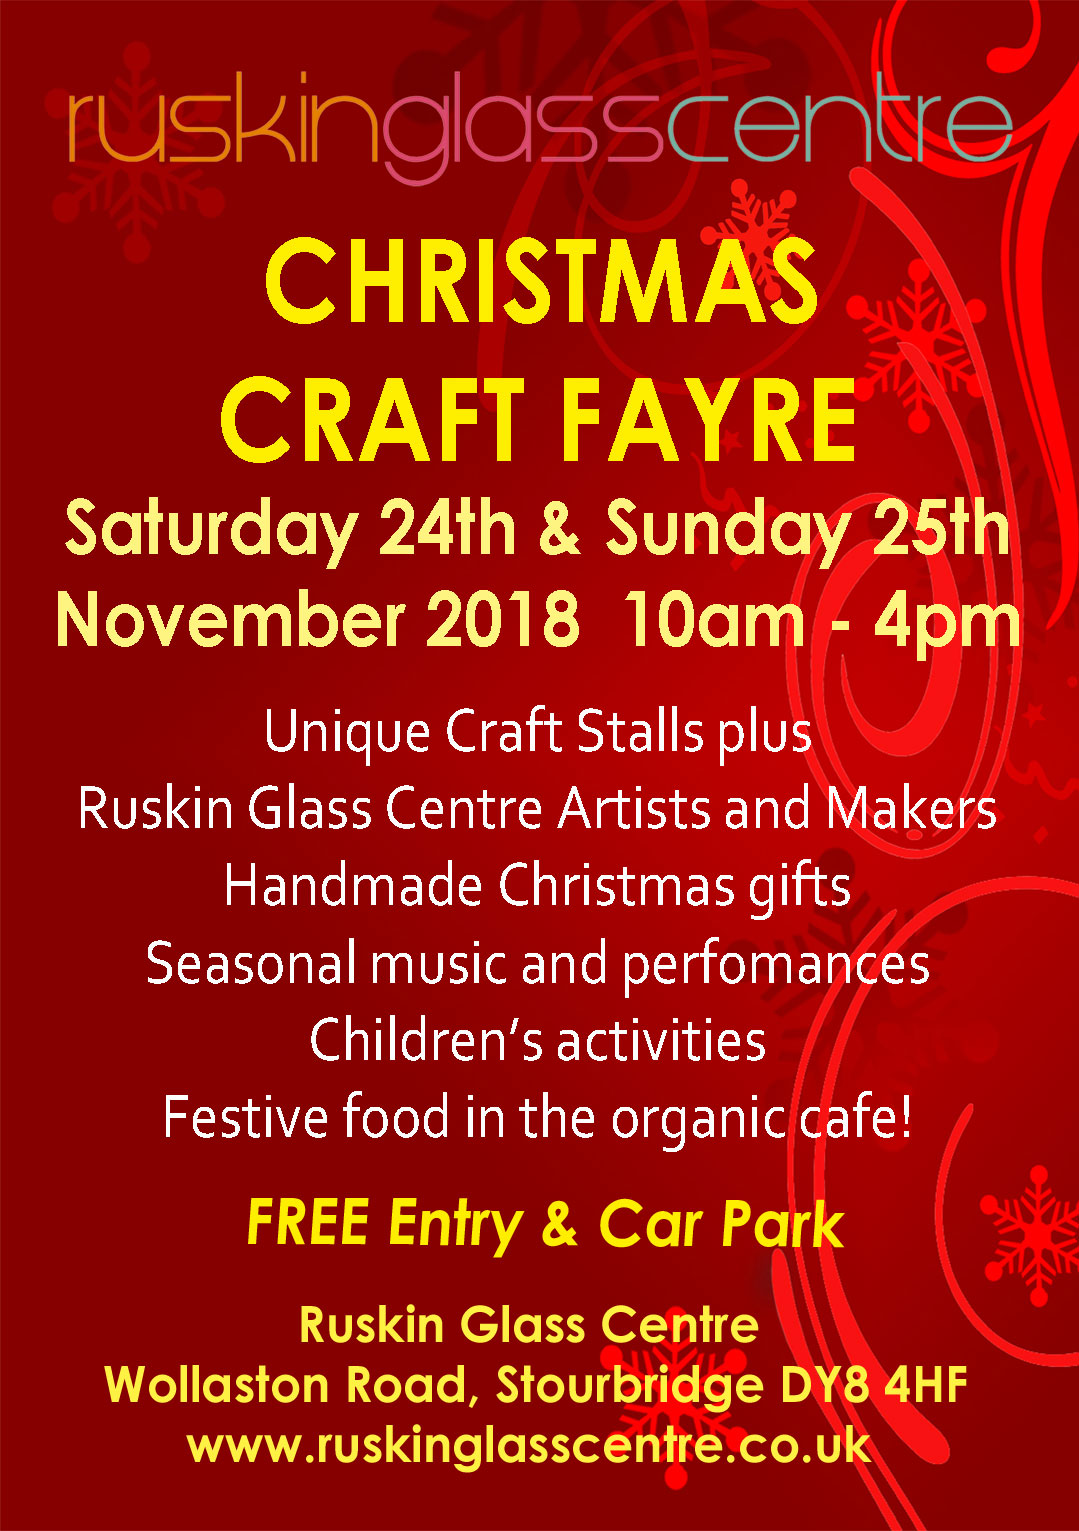 Ruskin Glass Centre Christmas Craft Fayre